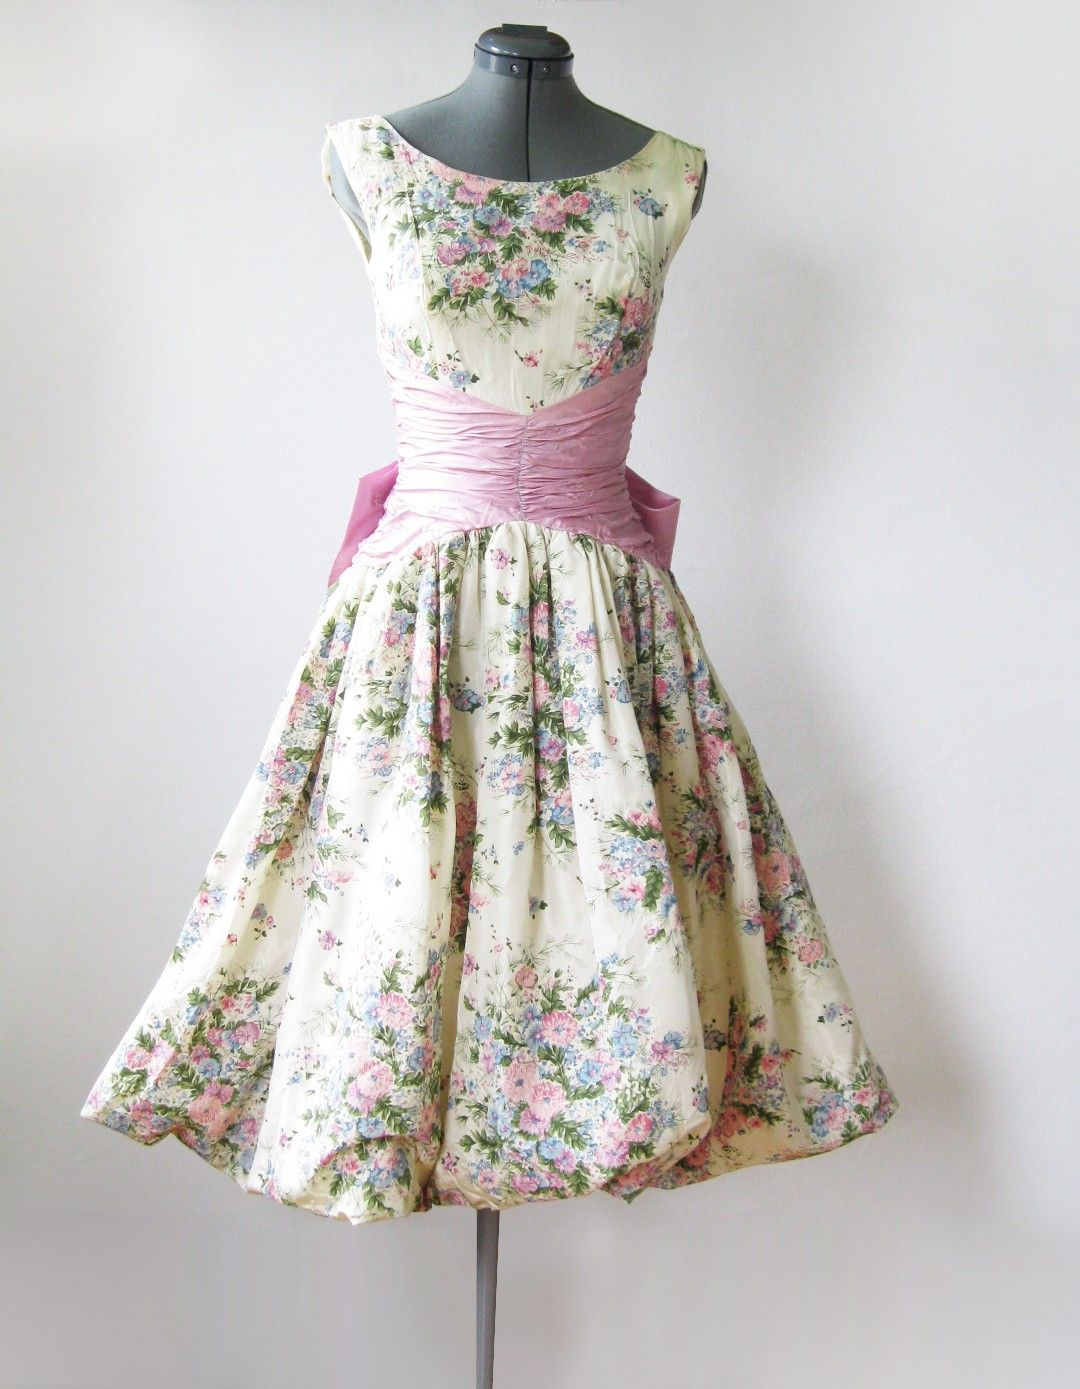 Vintage 50s spring garden party dress | Gardens, Spring and ...